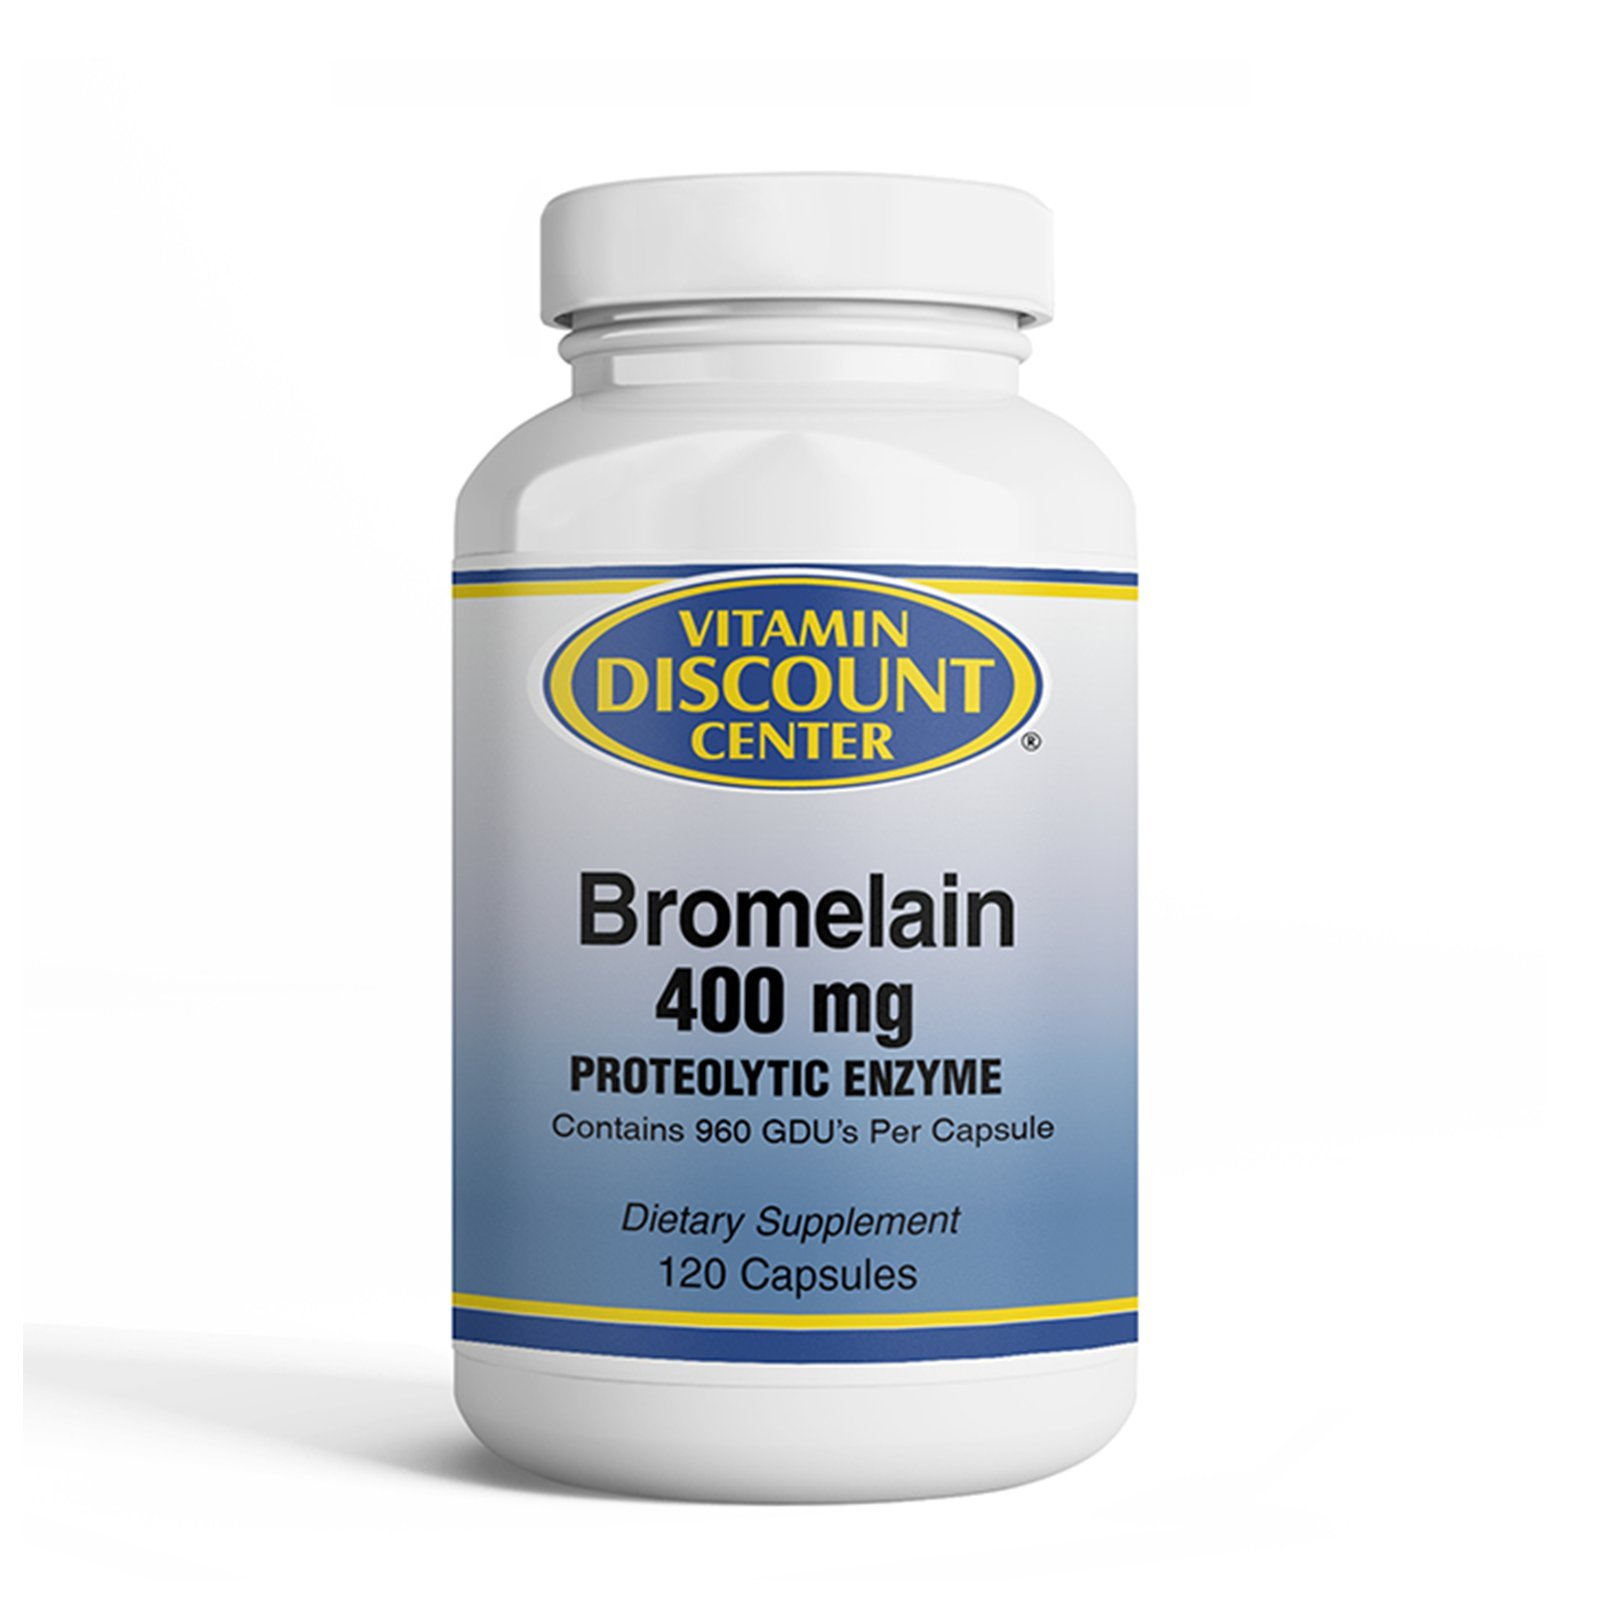 Vitamin Discount Center Bromelain 400mg, Digestive Enzymes, 120 Capsules